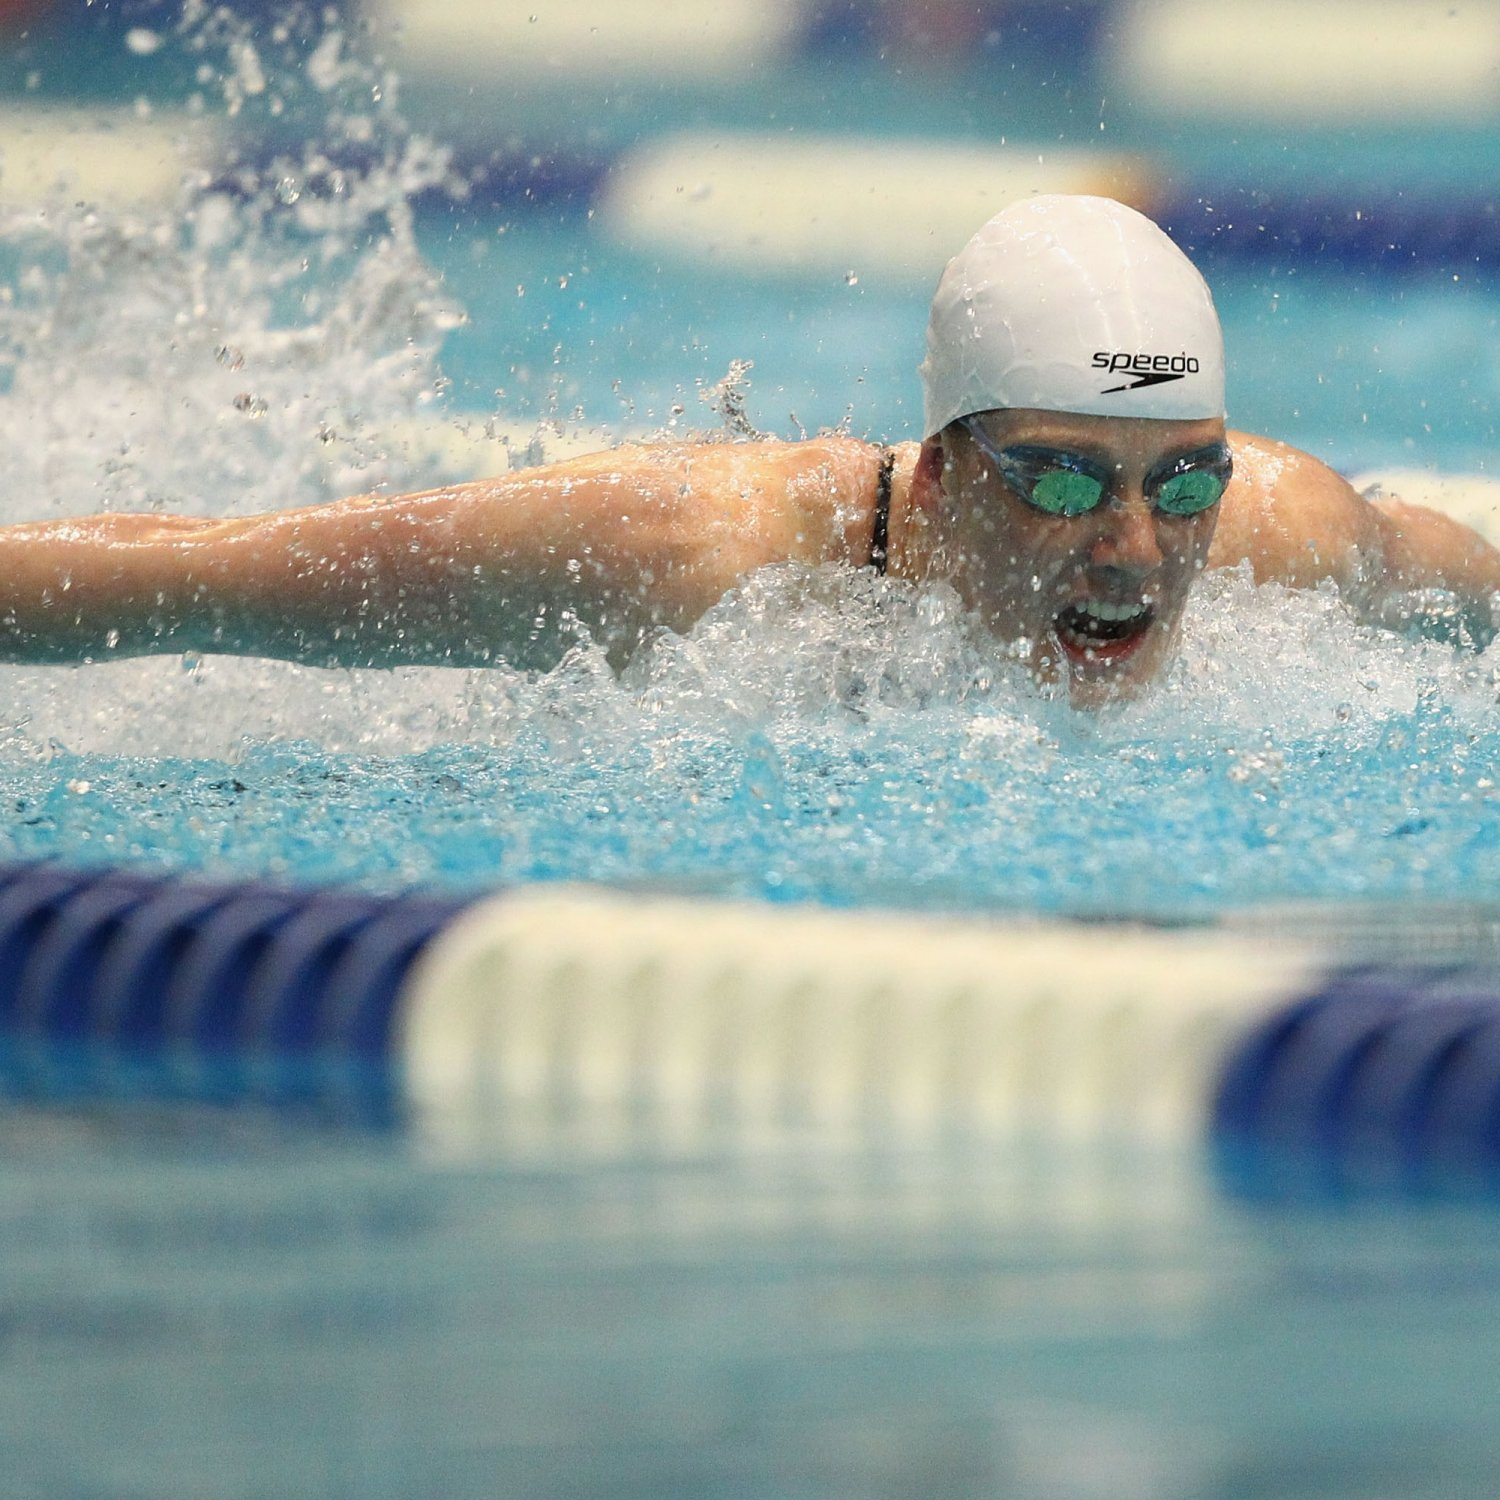 Olympic Swimming Pool In Person: US Olympic Swimming Trials 2012: Missy Franklin Set To Be